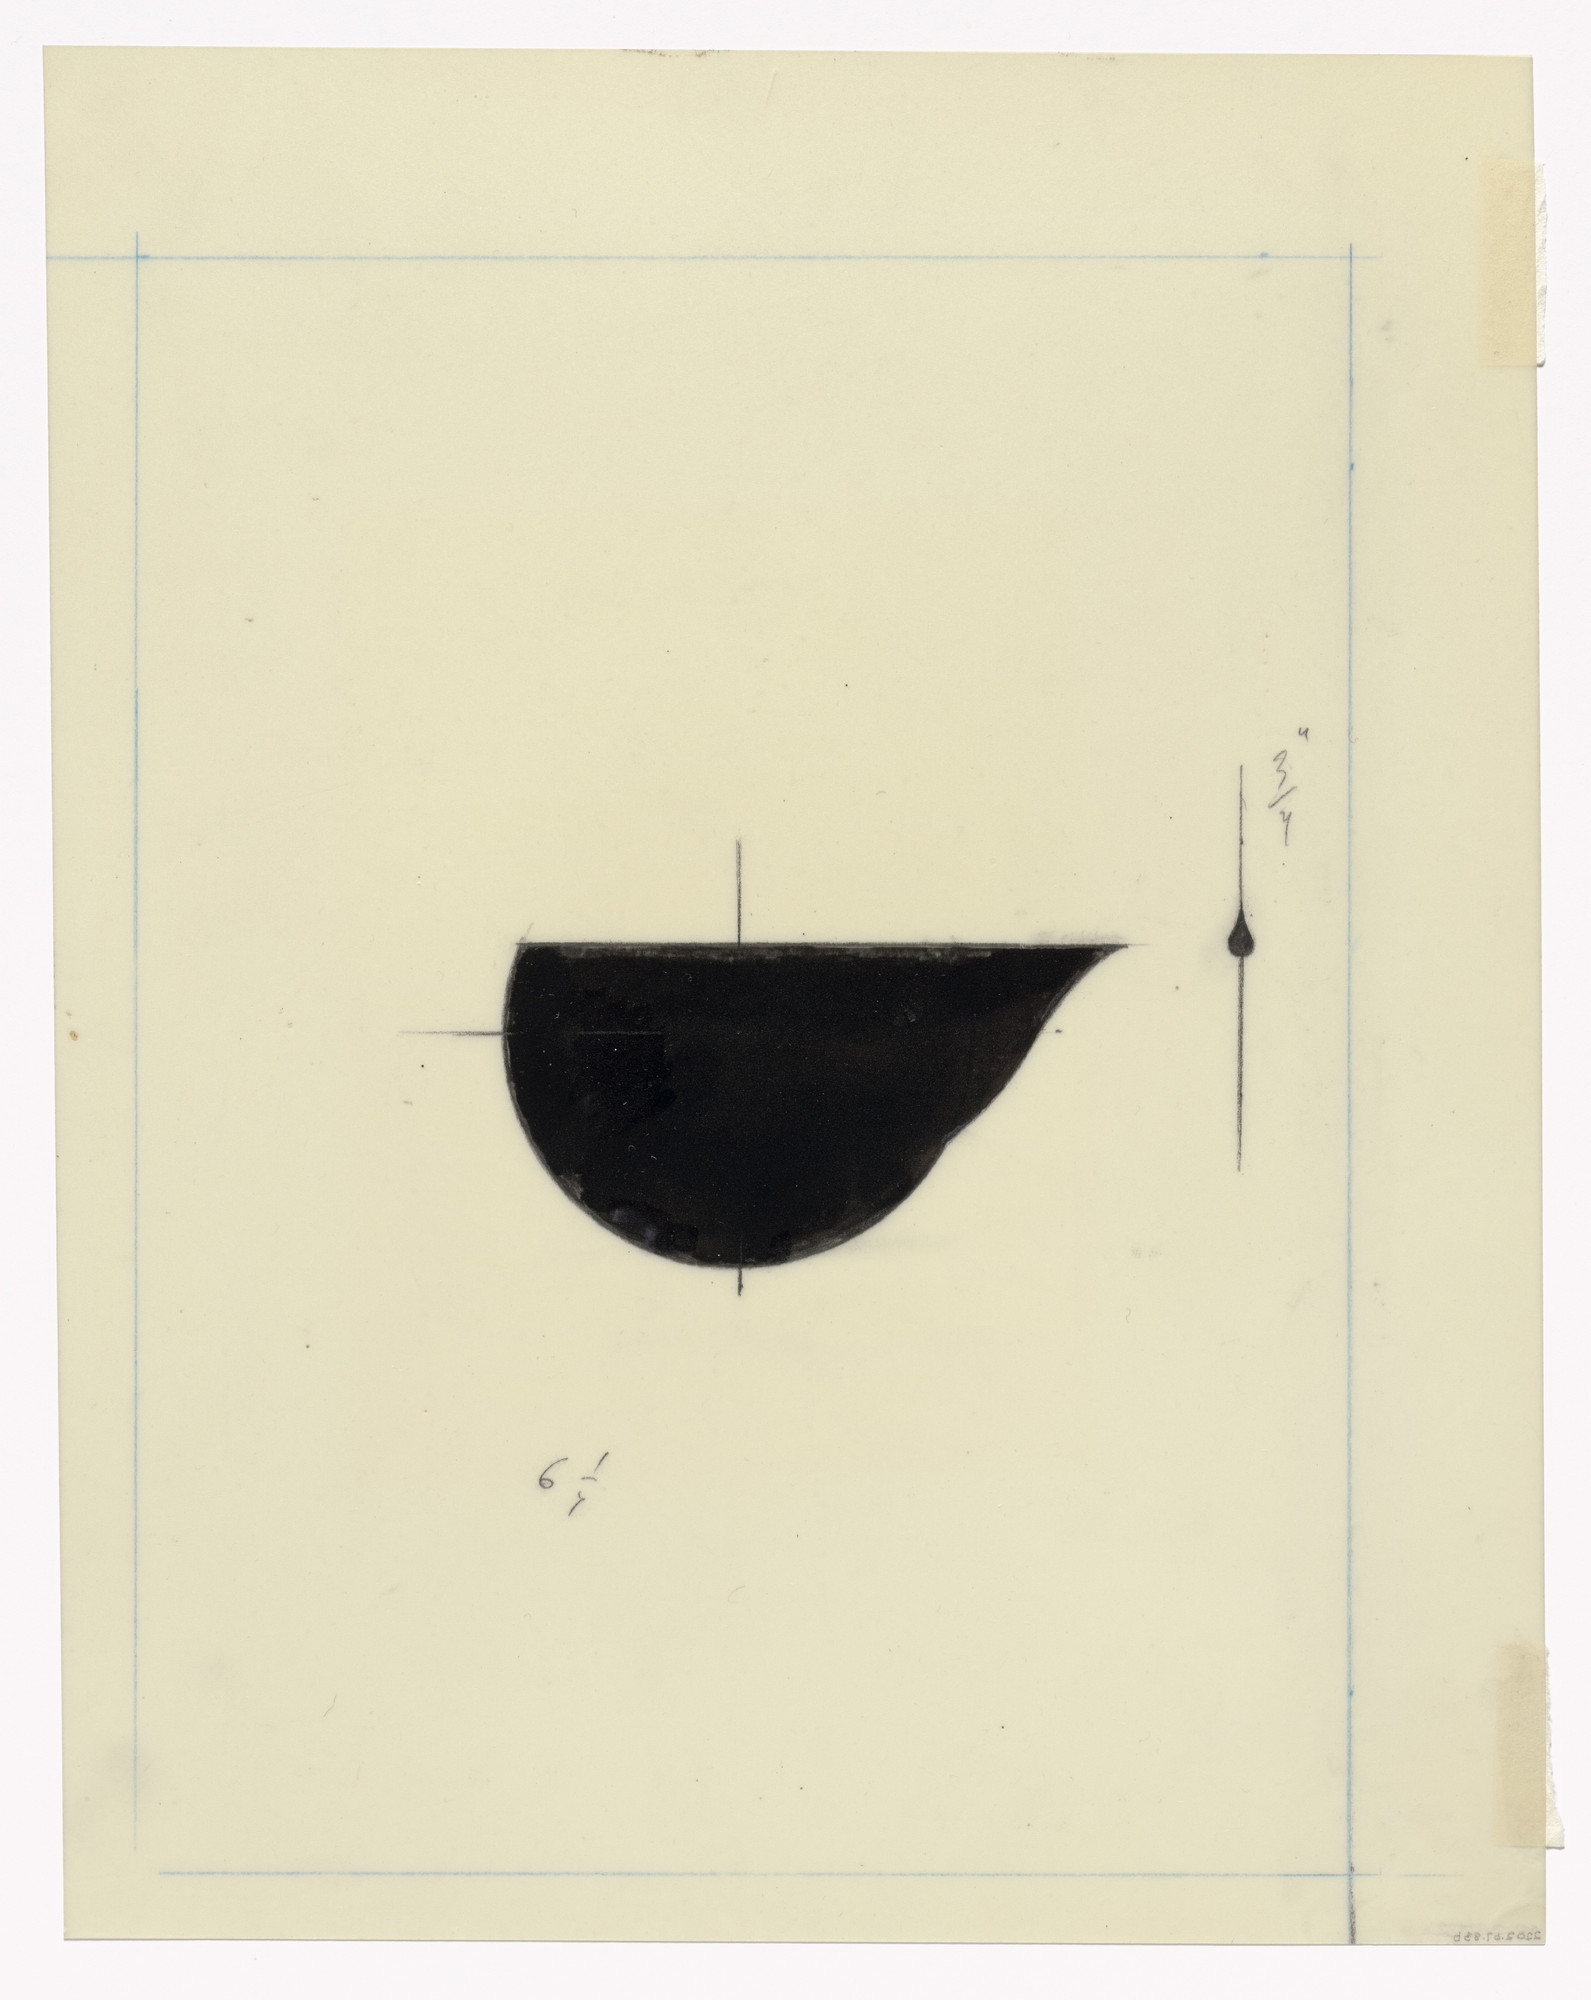 Claes Oldenburg. Preparatory drawing for In Memory of My Feelings. 1967